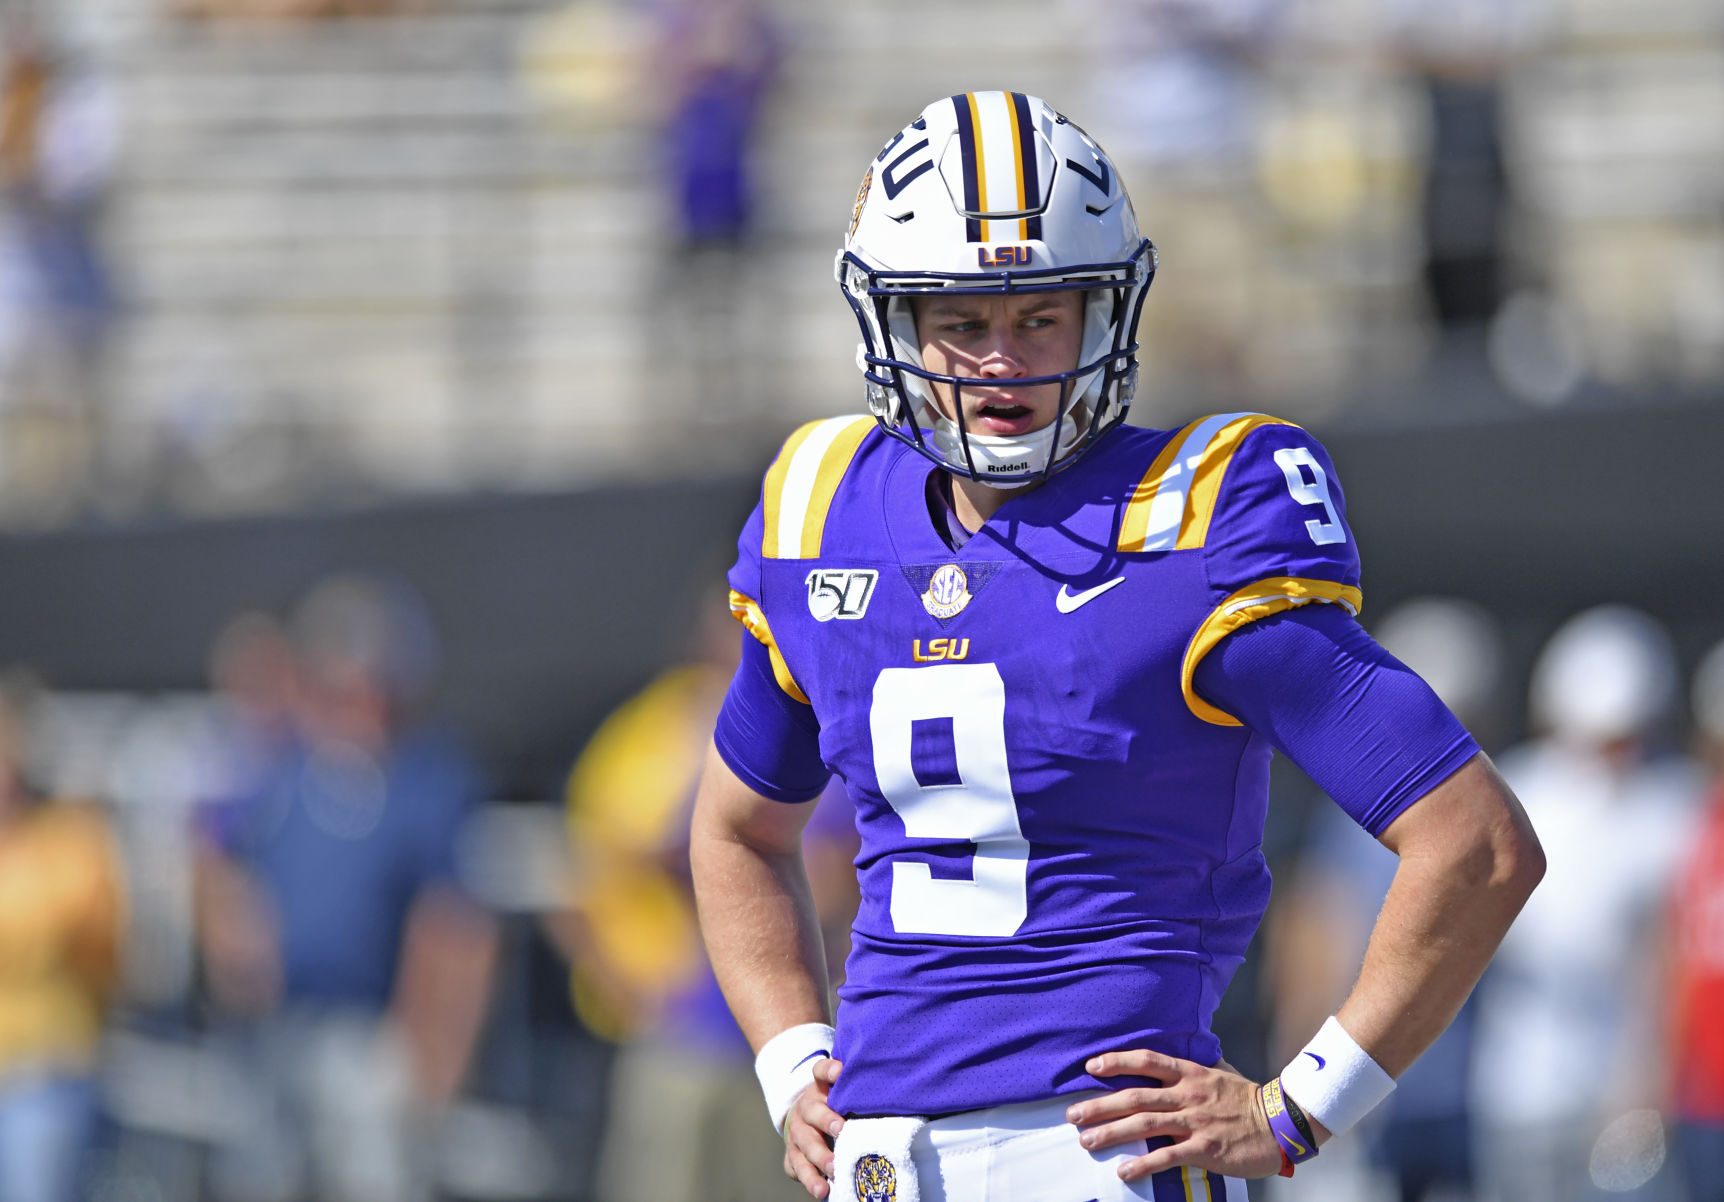 LSU's Joe Burrow named SEC Offensive Player of the Week for third time this season